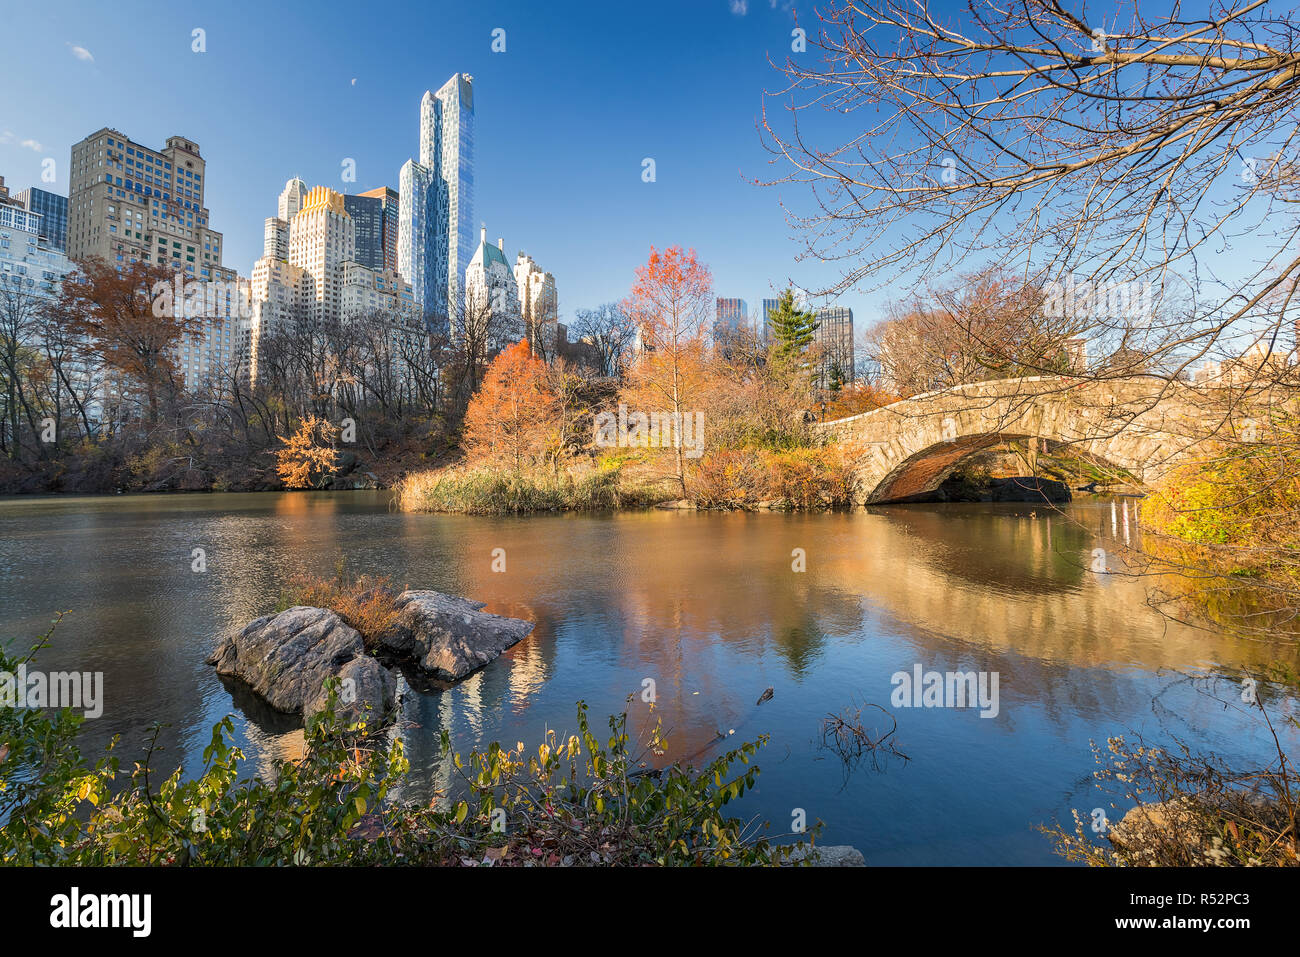 The pond in Central park in New York City at autumn day, USA - Stock Image